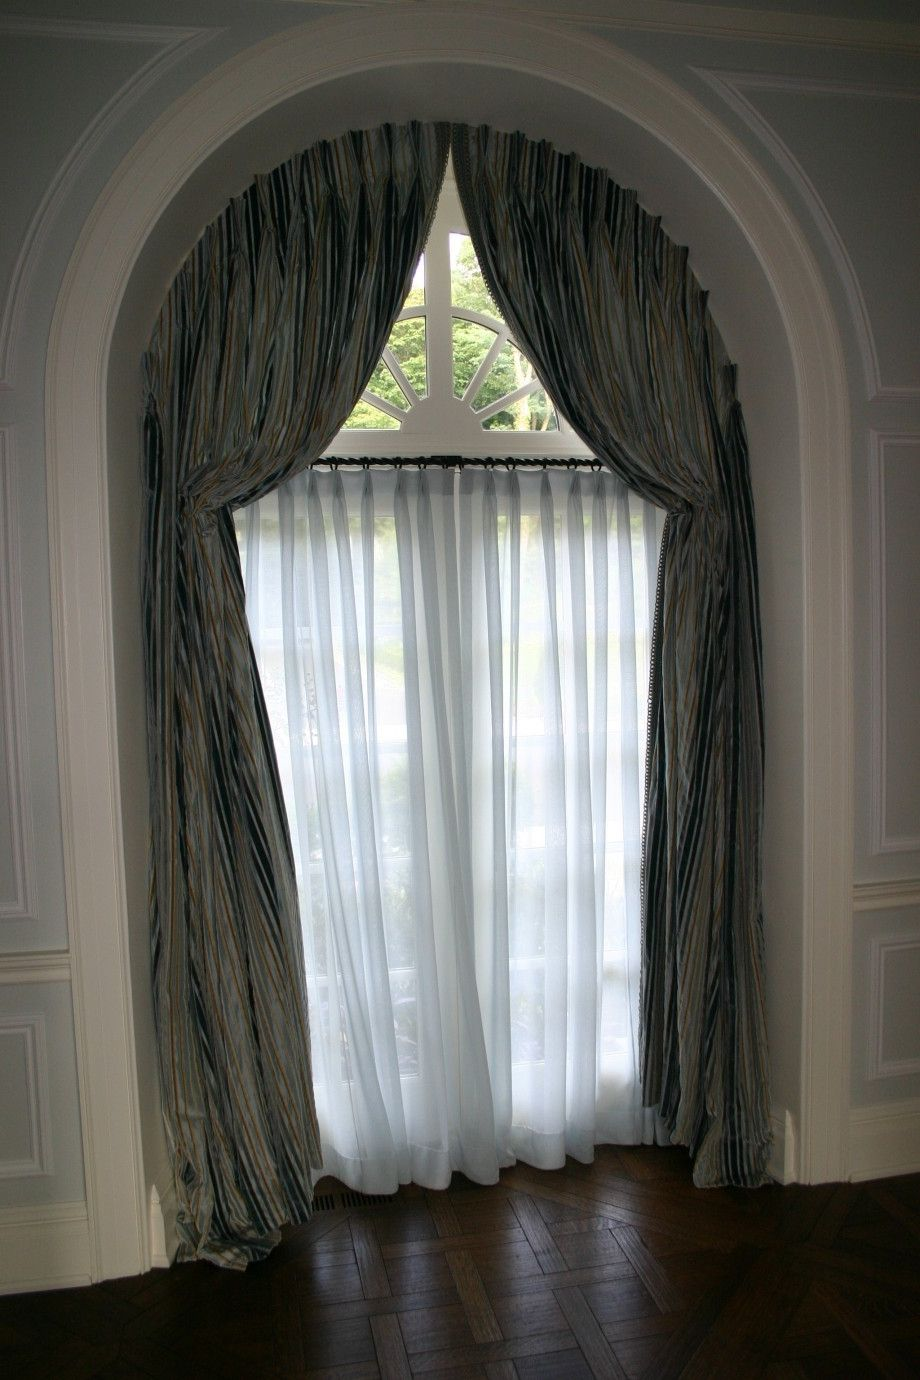 Inside house windows with curtains - Arched Window Treatments Home Decoration Ideas Half Circle Window Treatments Ideas Backgrounds